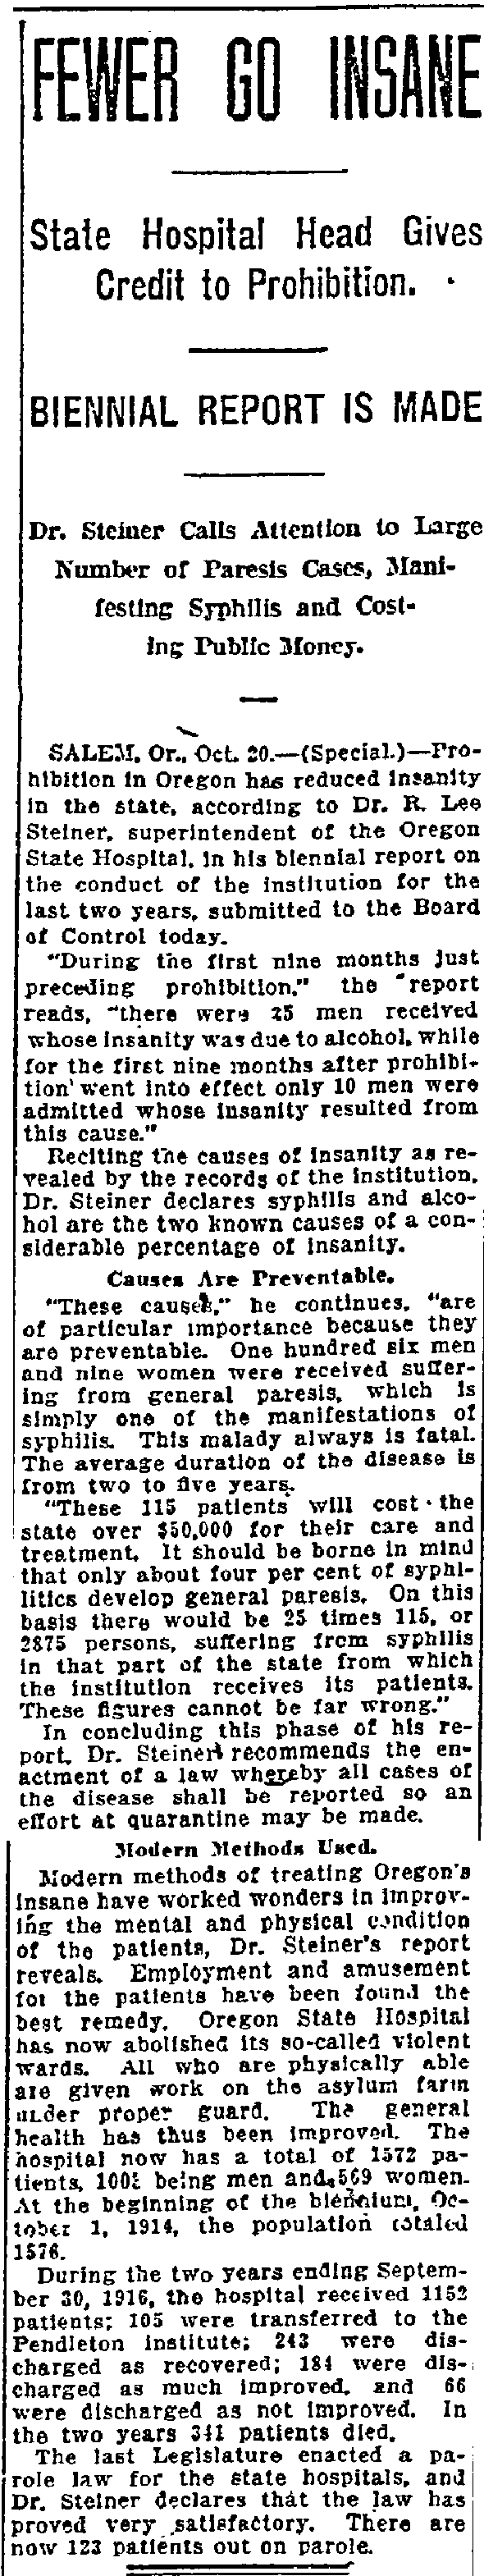 Fewer Go Insane State Hospital Head Gives Credit to Prohibition - October 21, 1916